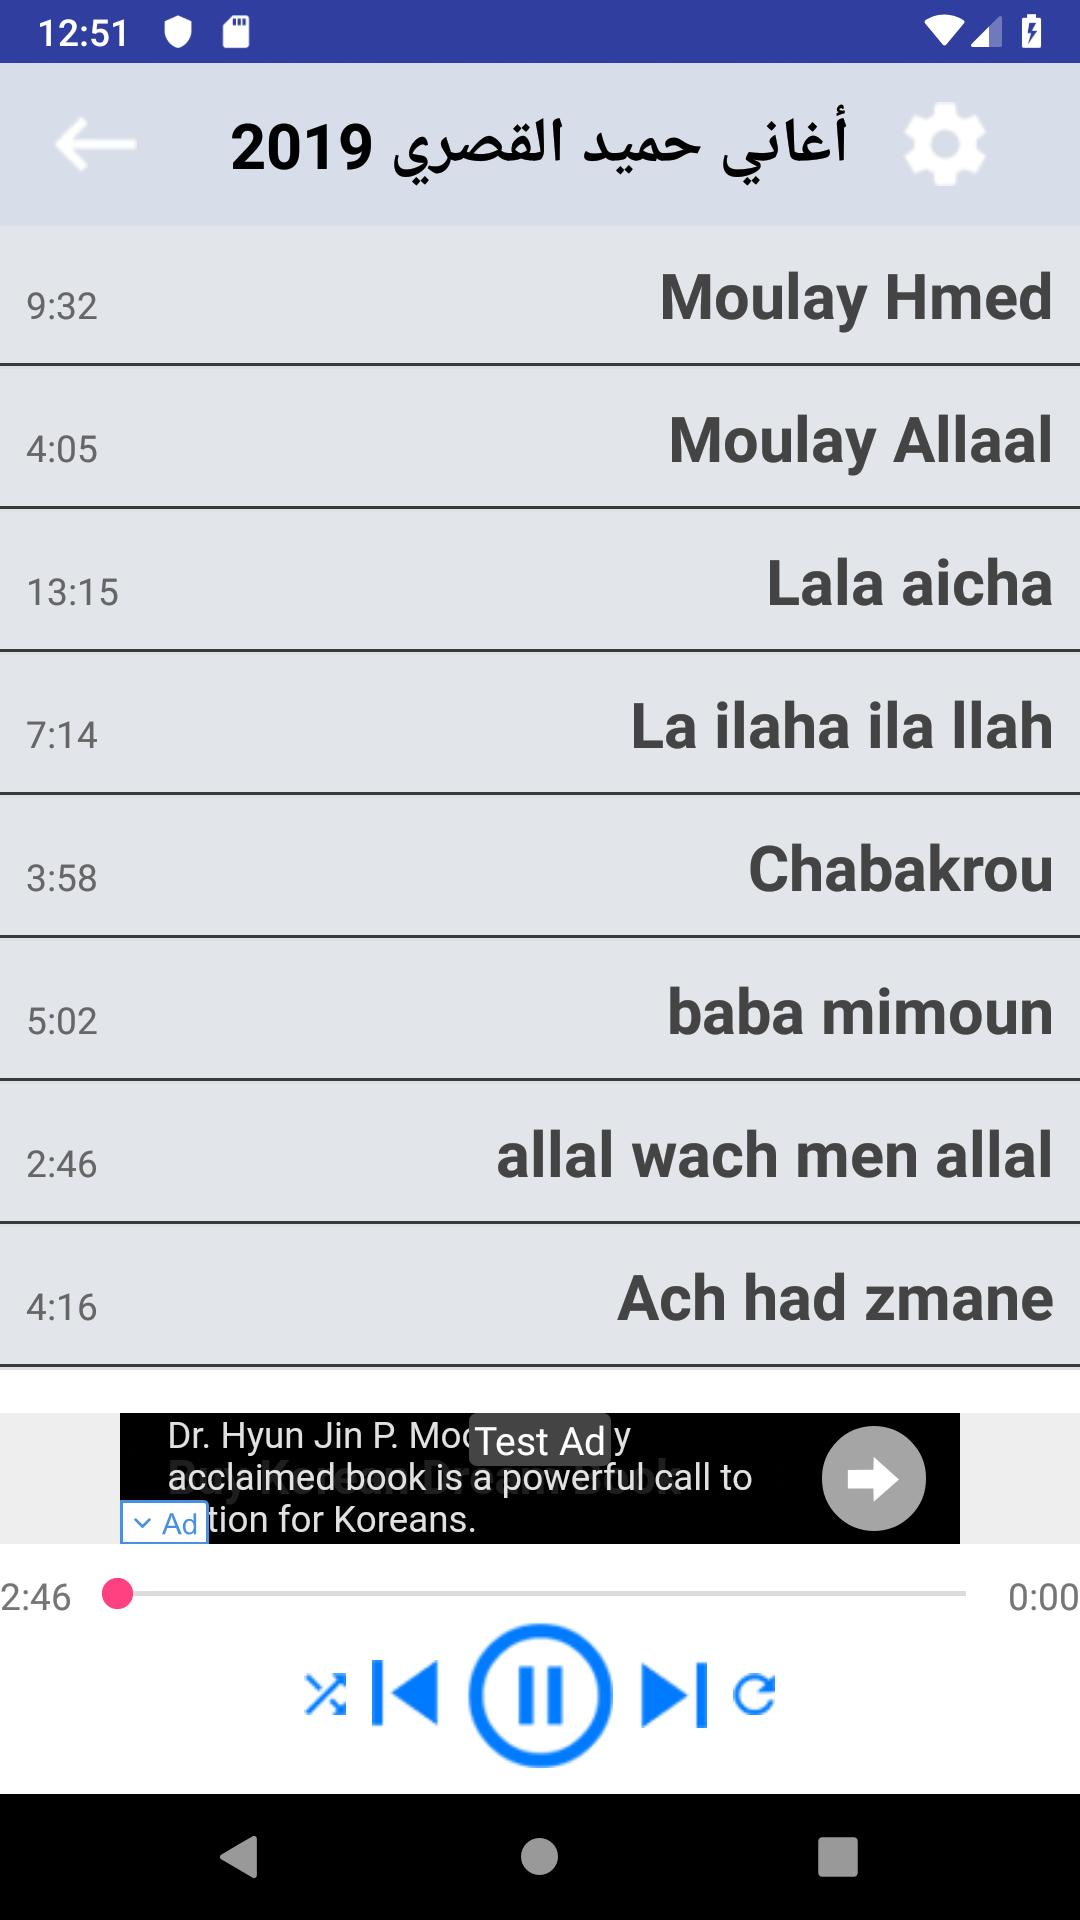 MP3 KASRI TÉLÉCHARGER EL HAMID